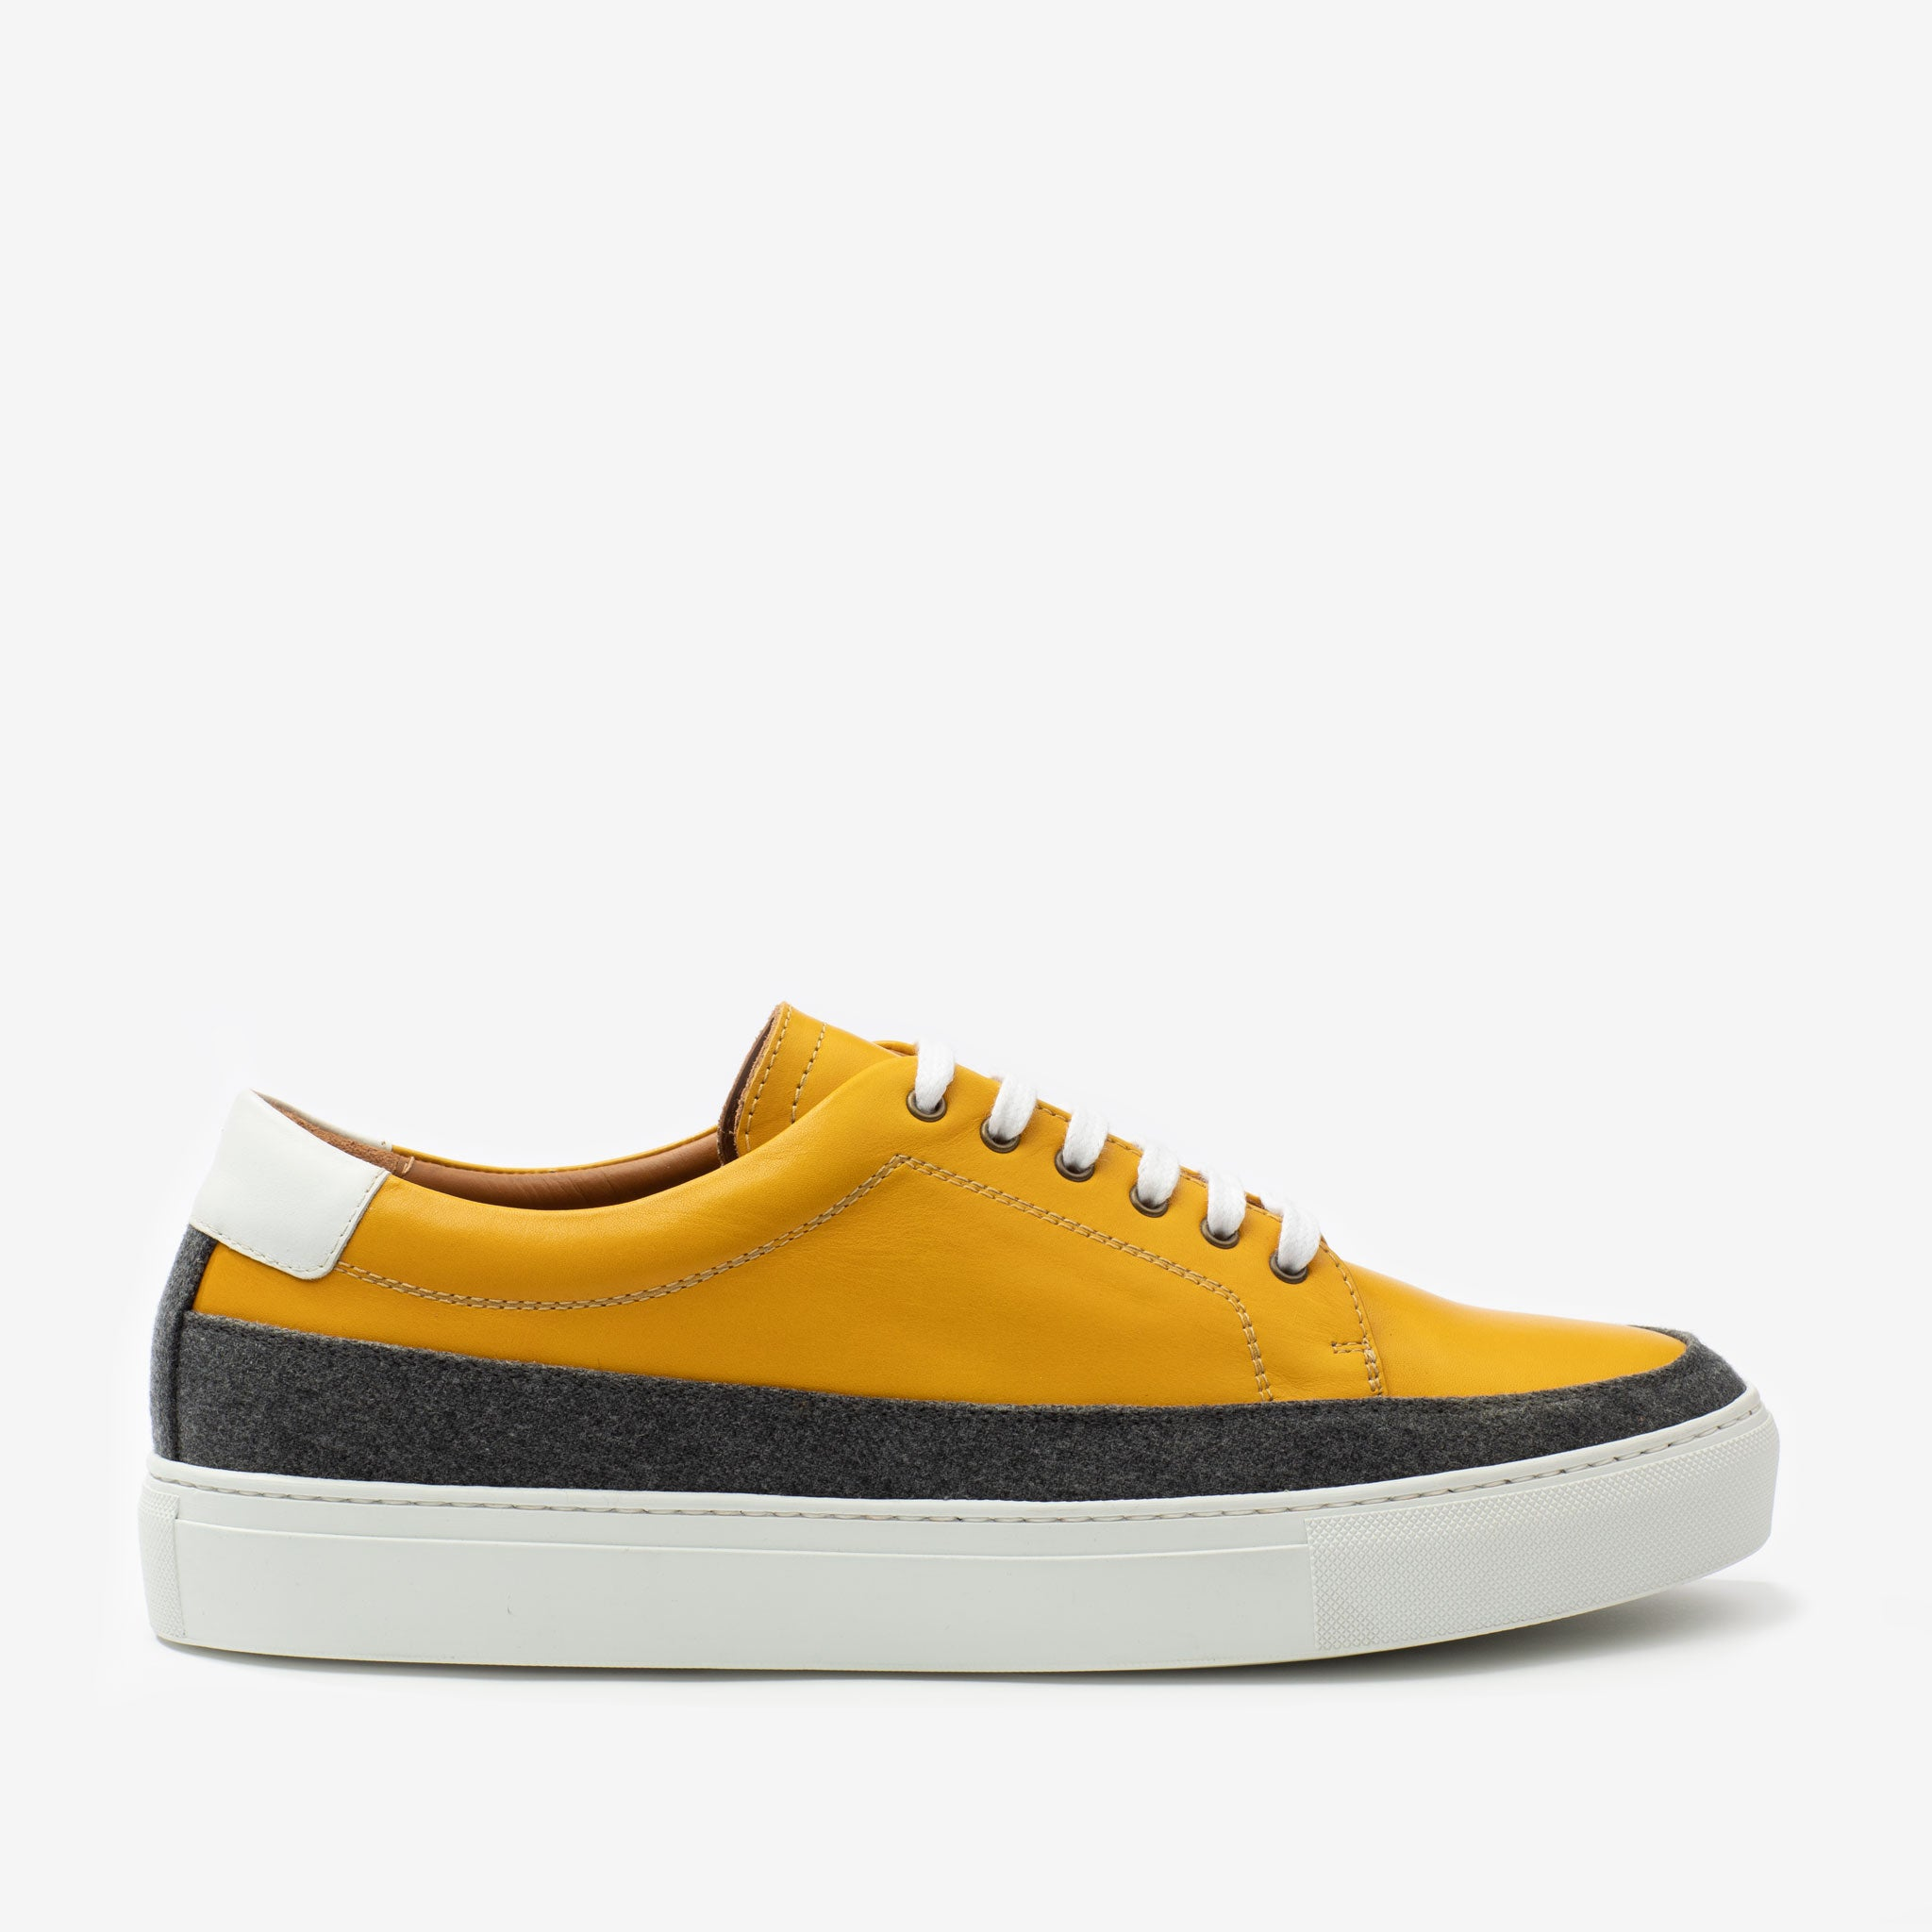 Fifth Ave Sneaker in Yellow Side